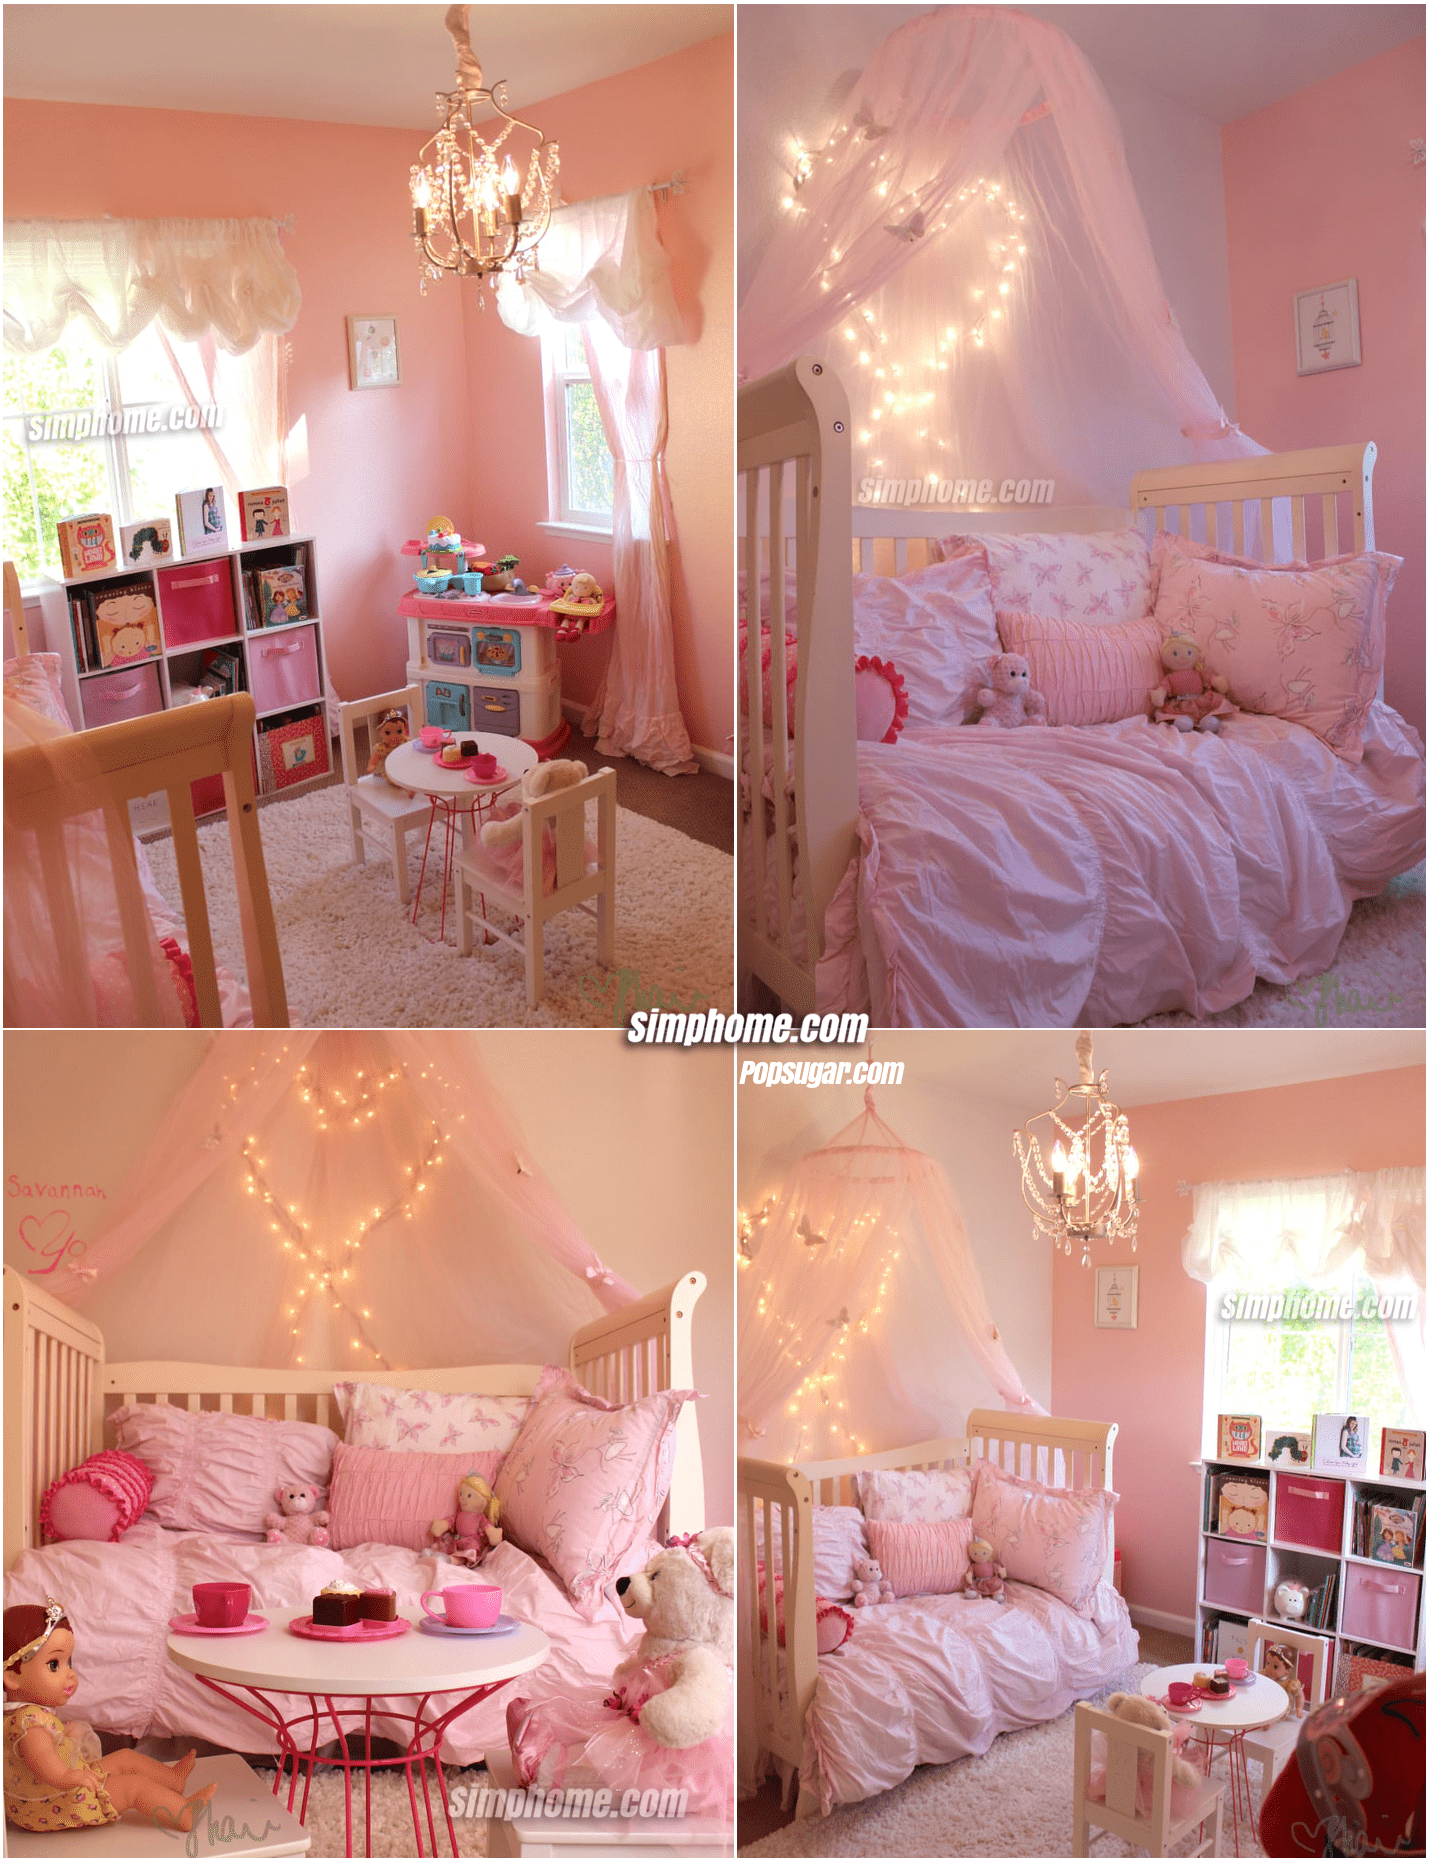 2.Simphome.com Chic Pink Girls Bedroom